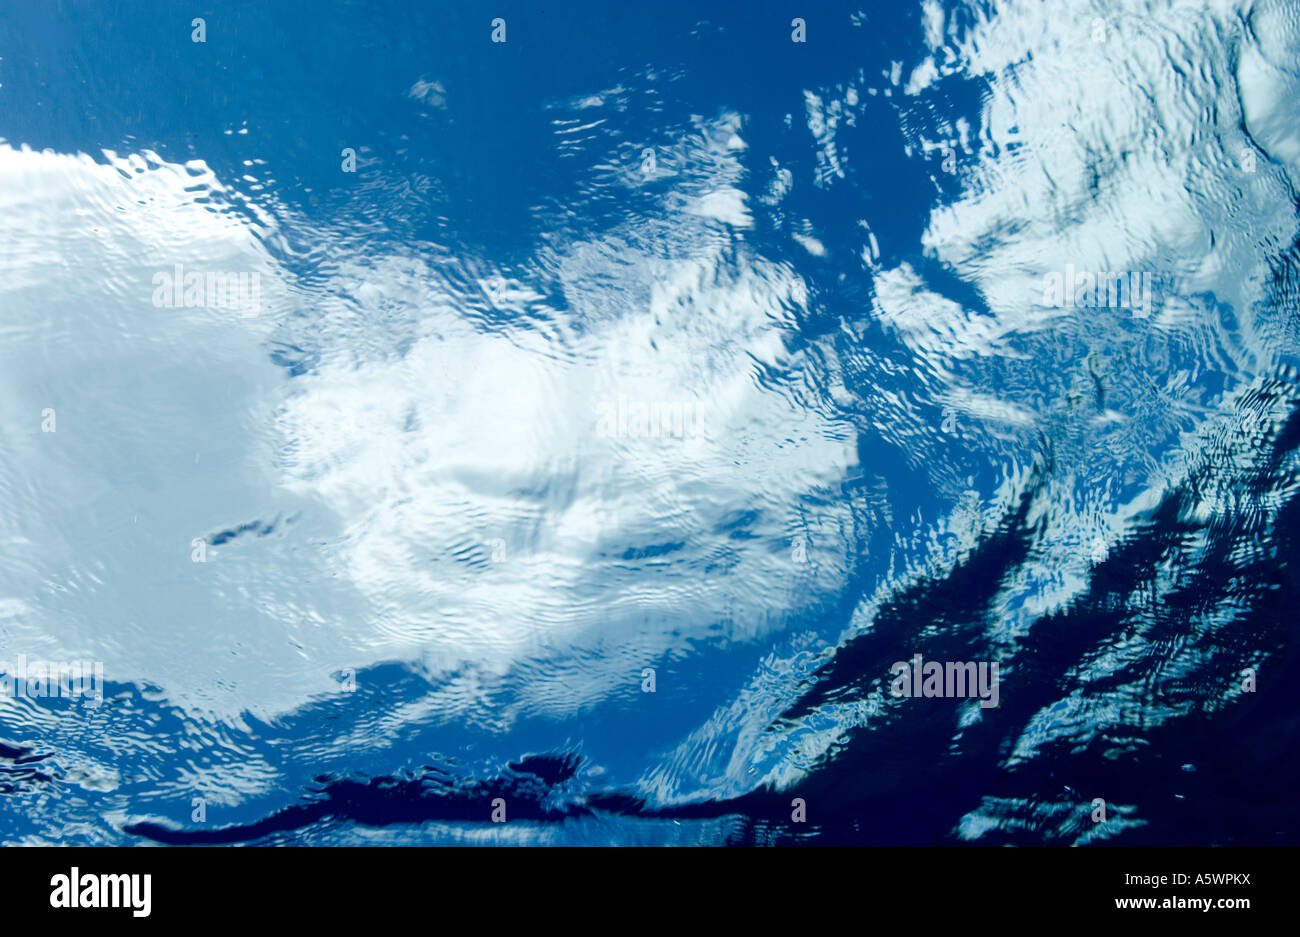 UNDERWATER VIEW OF WATER SURFACE CLOUDS SEEN THROUGH THE SURFACE - Stock Image